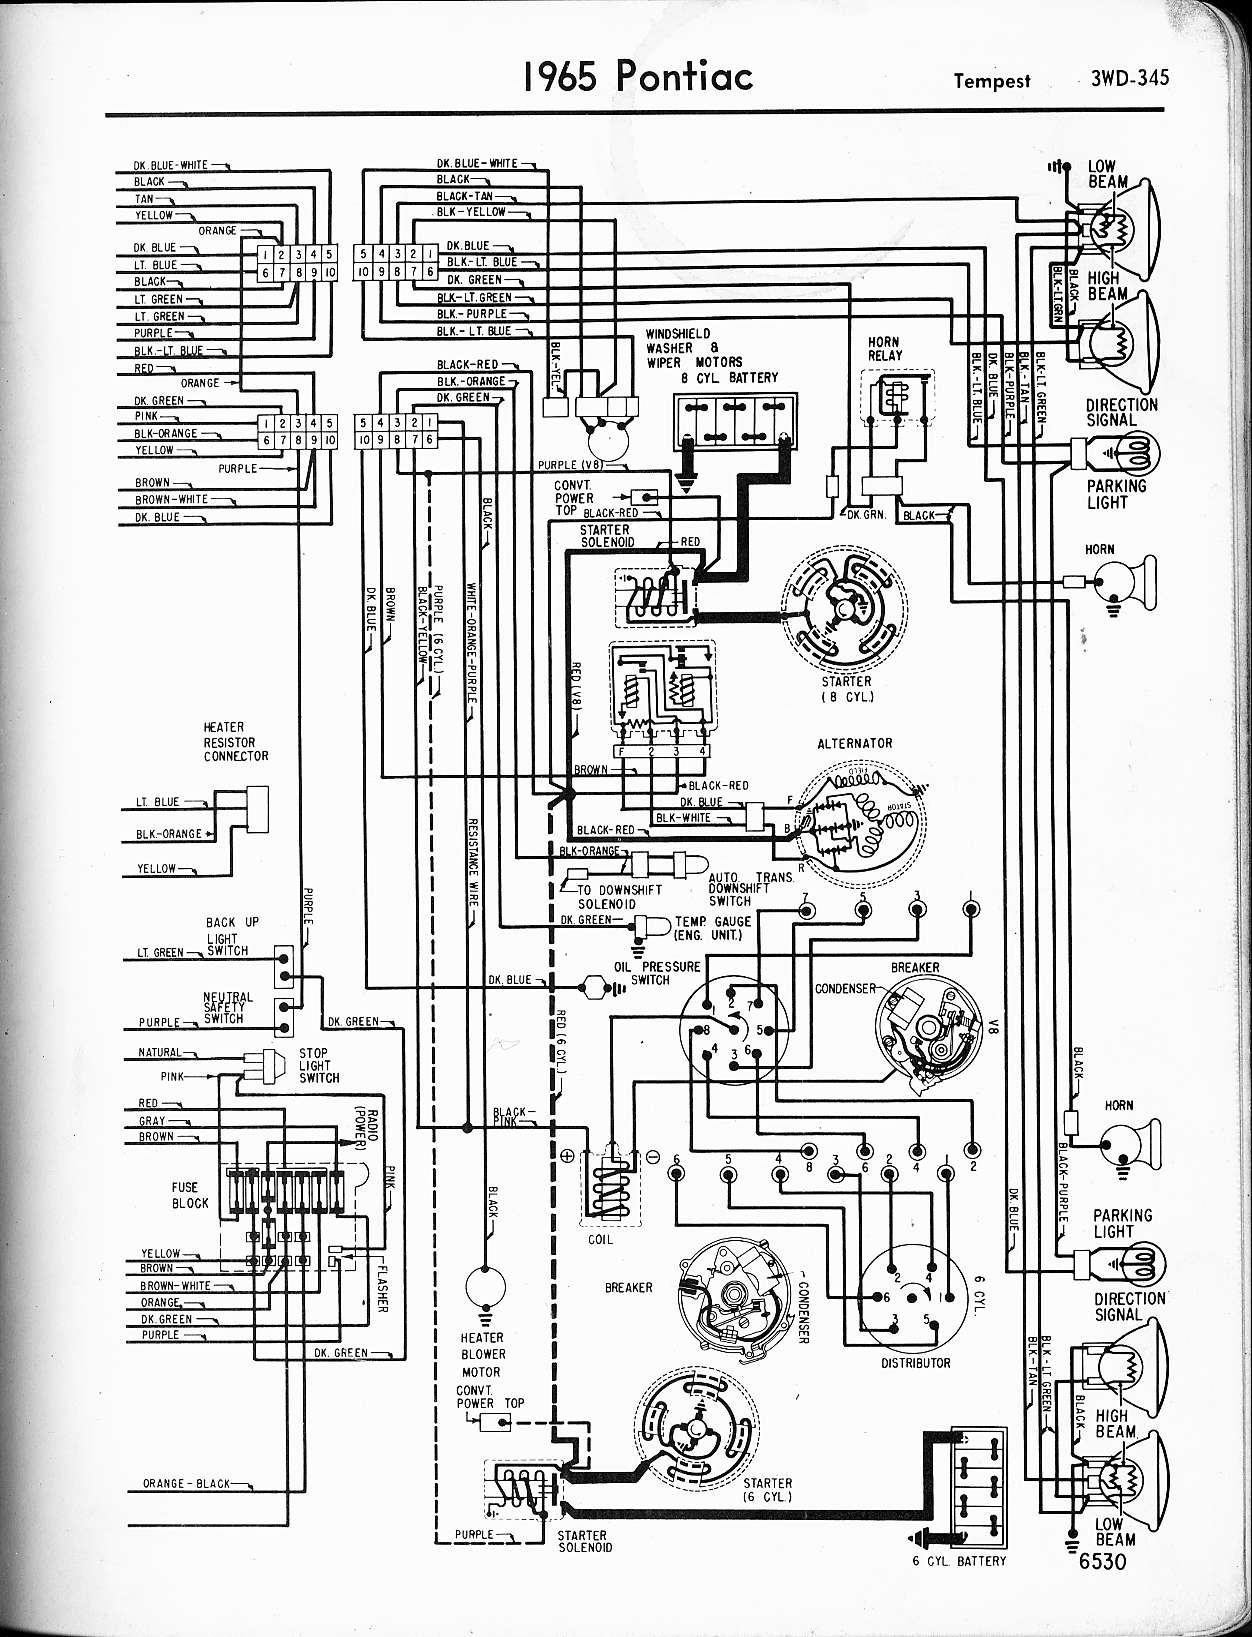 Pontiac Wiring 1957 1965 1967 Cougar Diagram Tempest Right Page